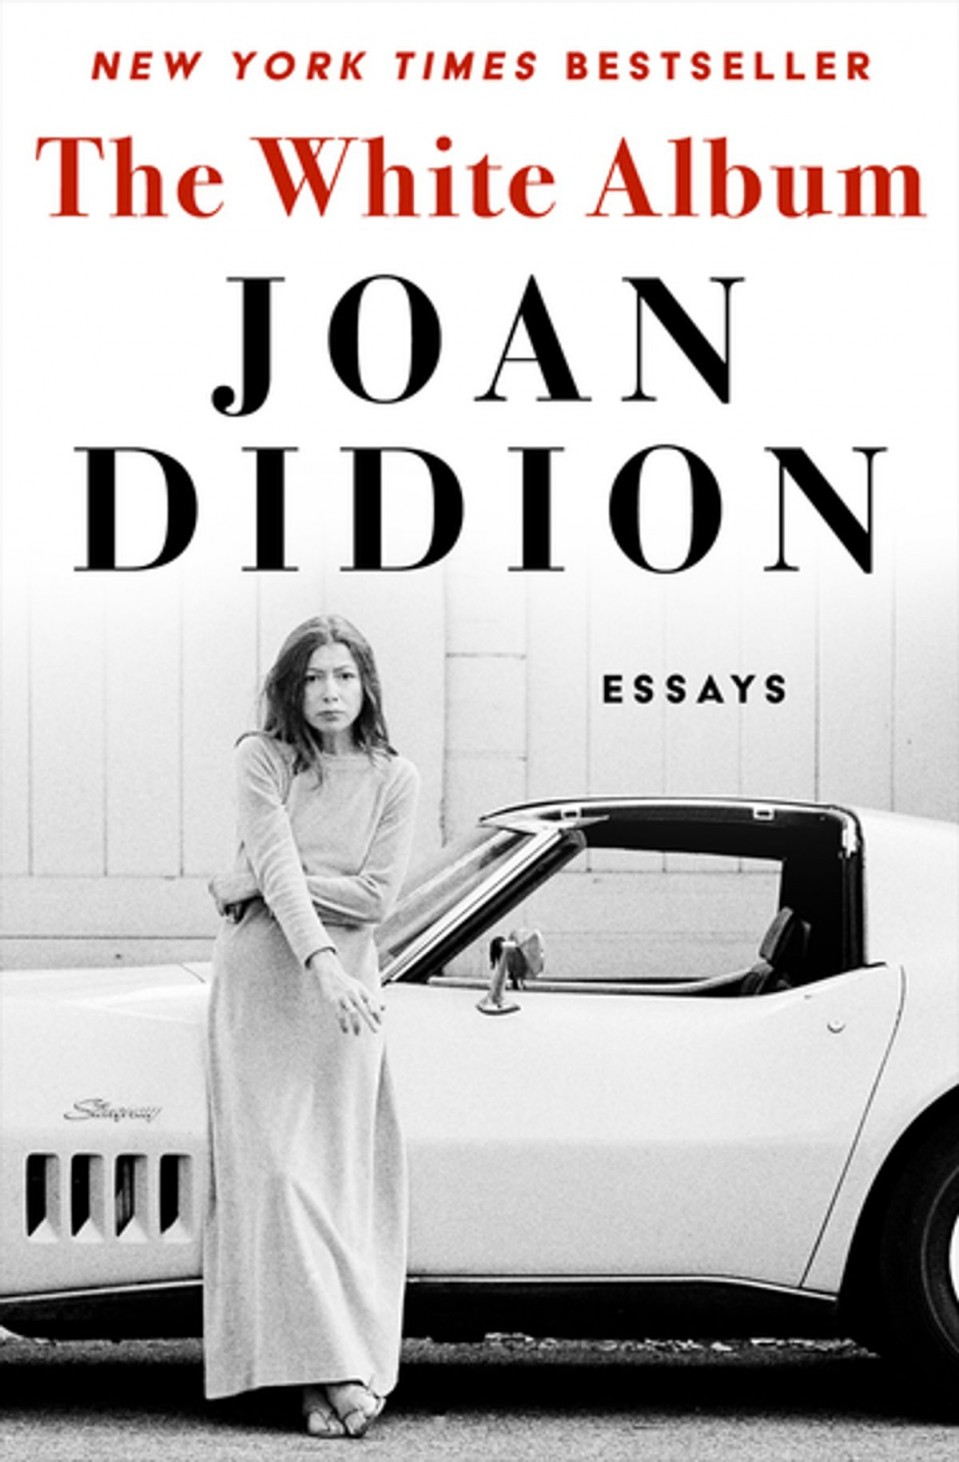 026 The White Album Essay Example Joan Didion Singular Essays Collections On Santa Ana Winds Amazon 960